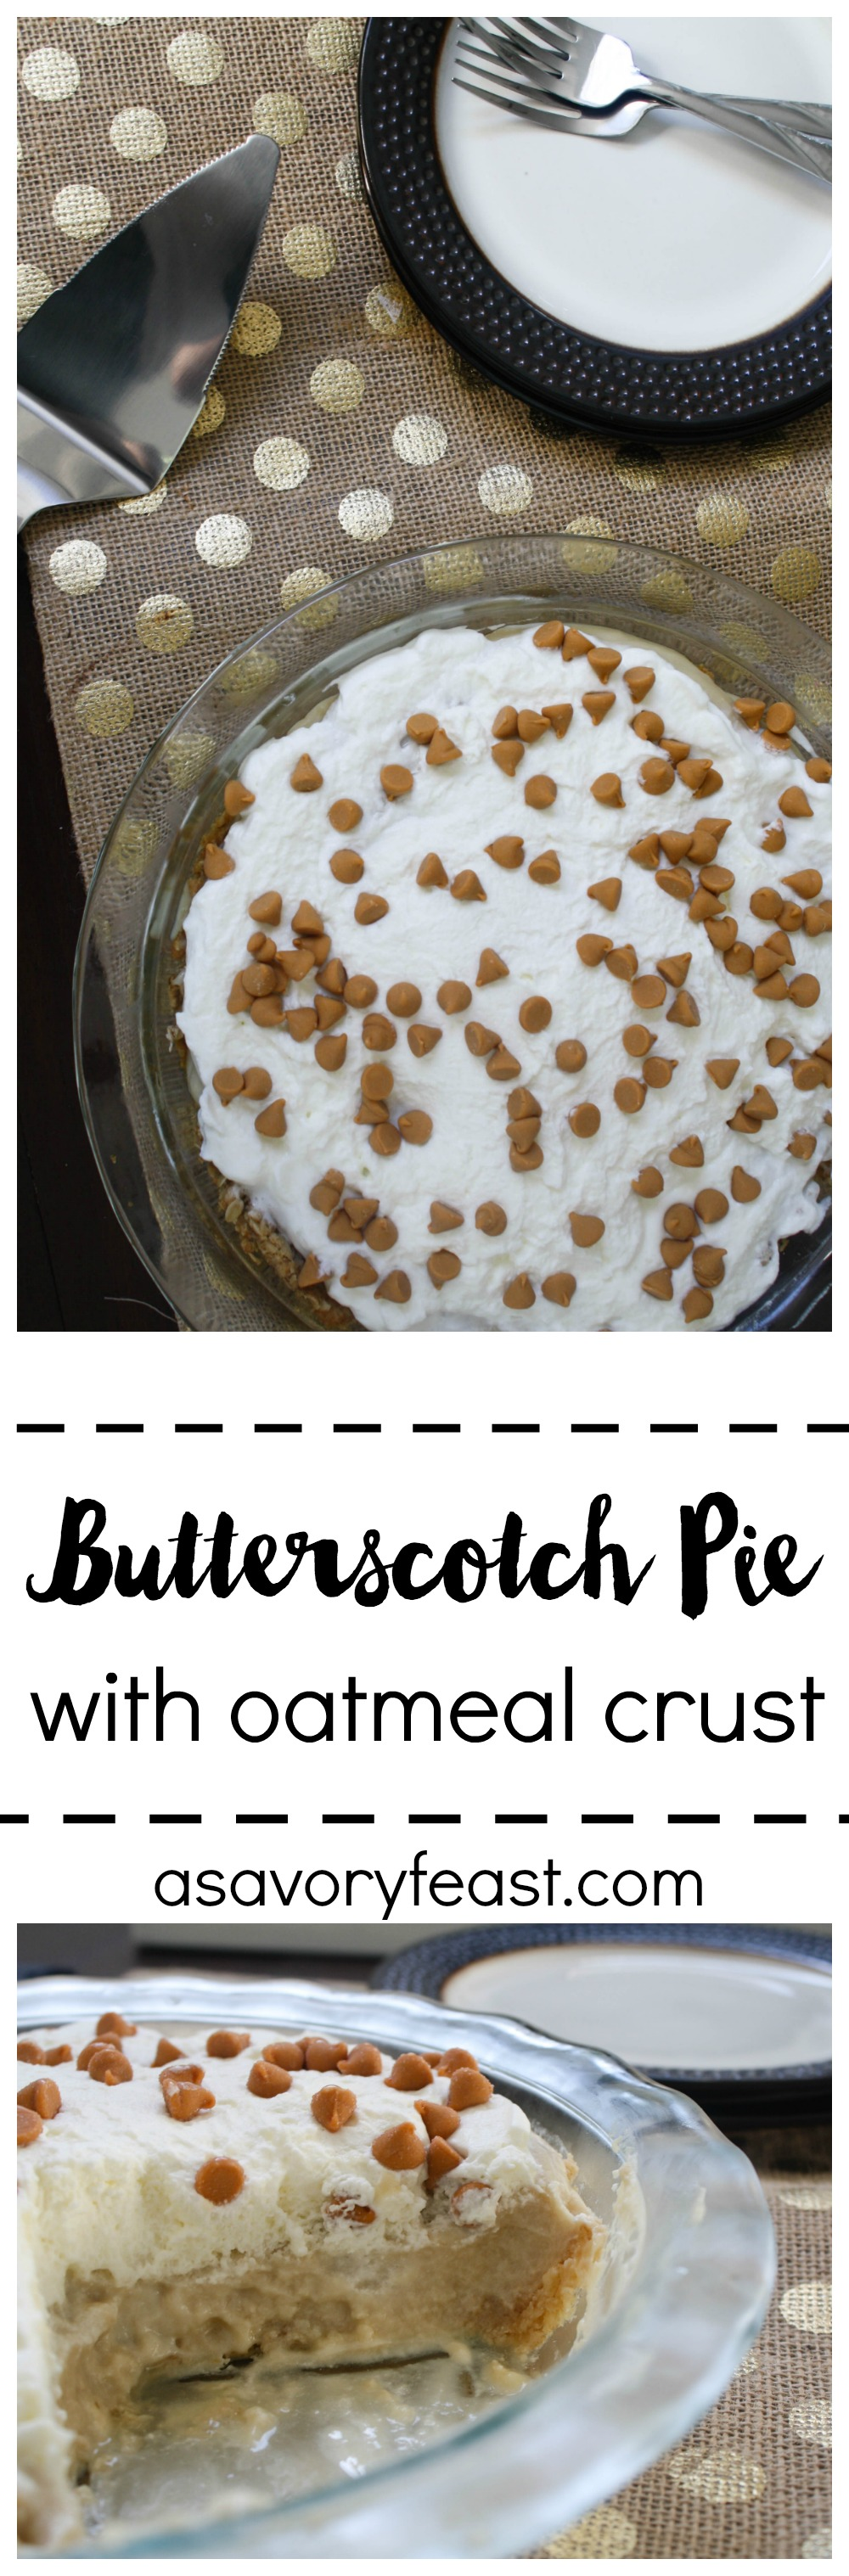 This Butterscotch Pie with Oatmeal Crust is made from scratch, but don't let that scare you! It starts with a simple oatmeal crust. Homemade butterscotch pudding comes next, topped with a super easy whipped cream and butterscotch chips. Your Thanksgiving menu just won't be complete without this dessert!